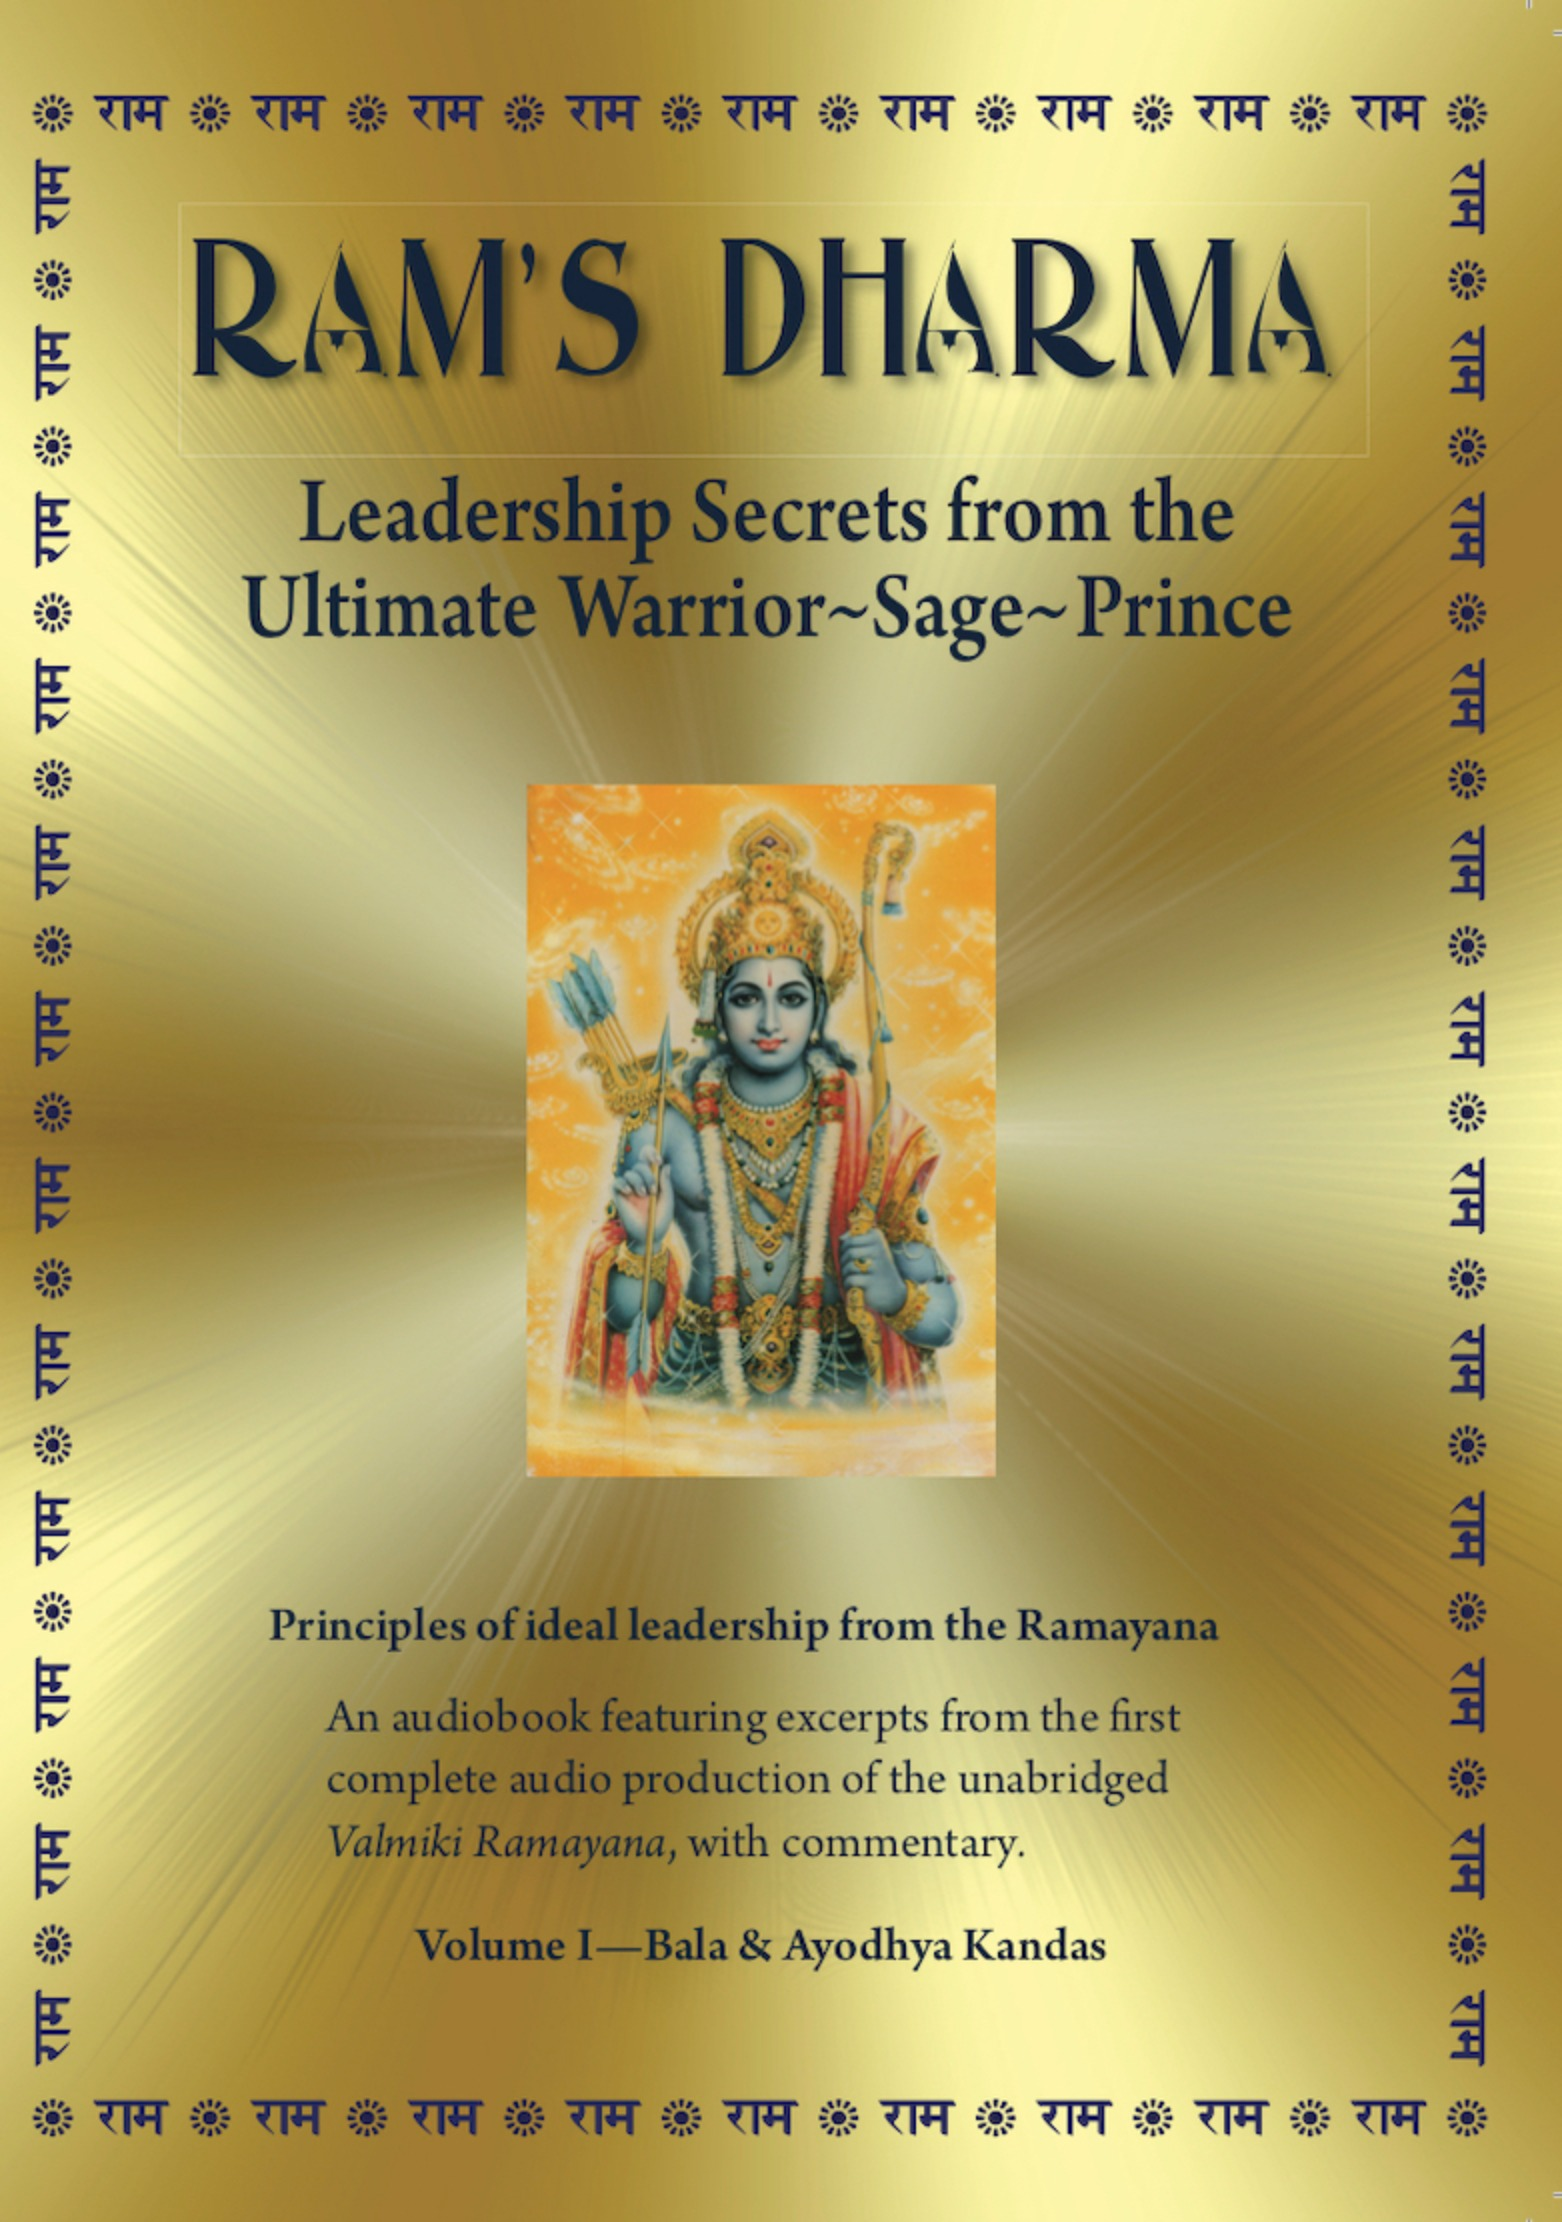 Ram's Dharma: Leadership Secrets From the Ultimate Warrior~Sage~Prince